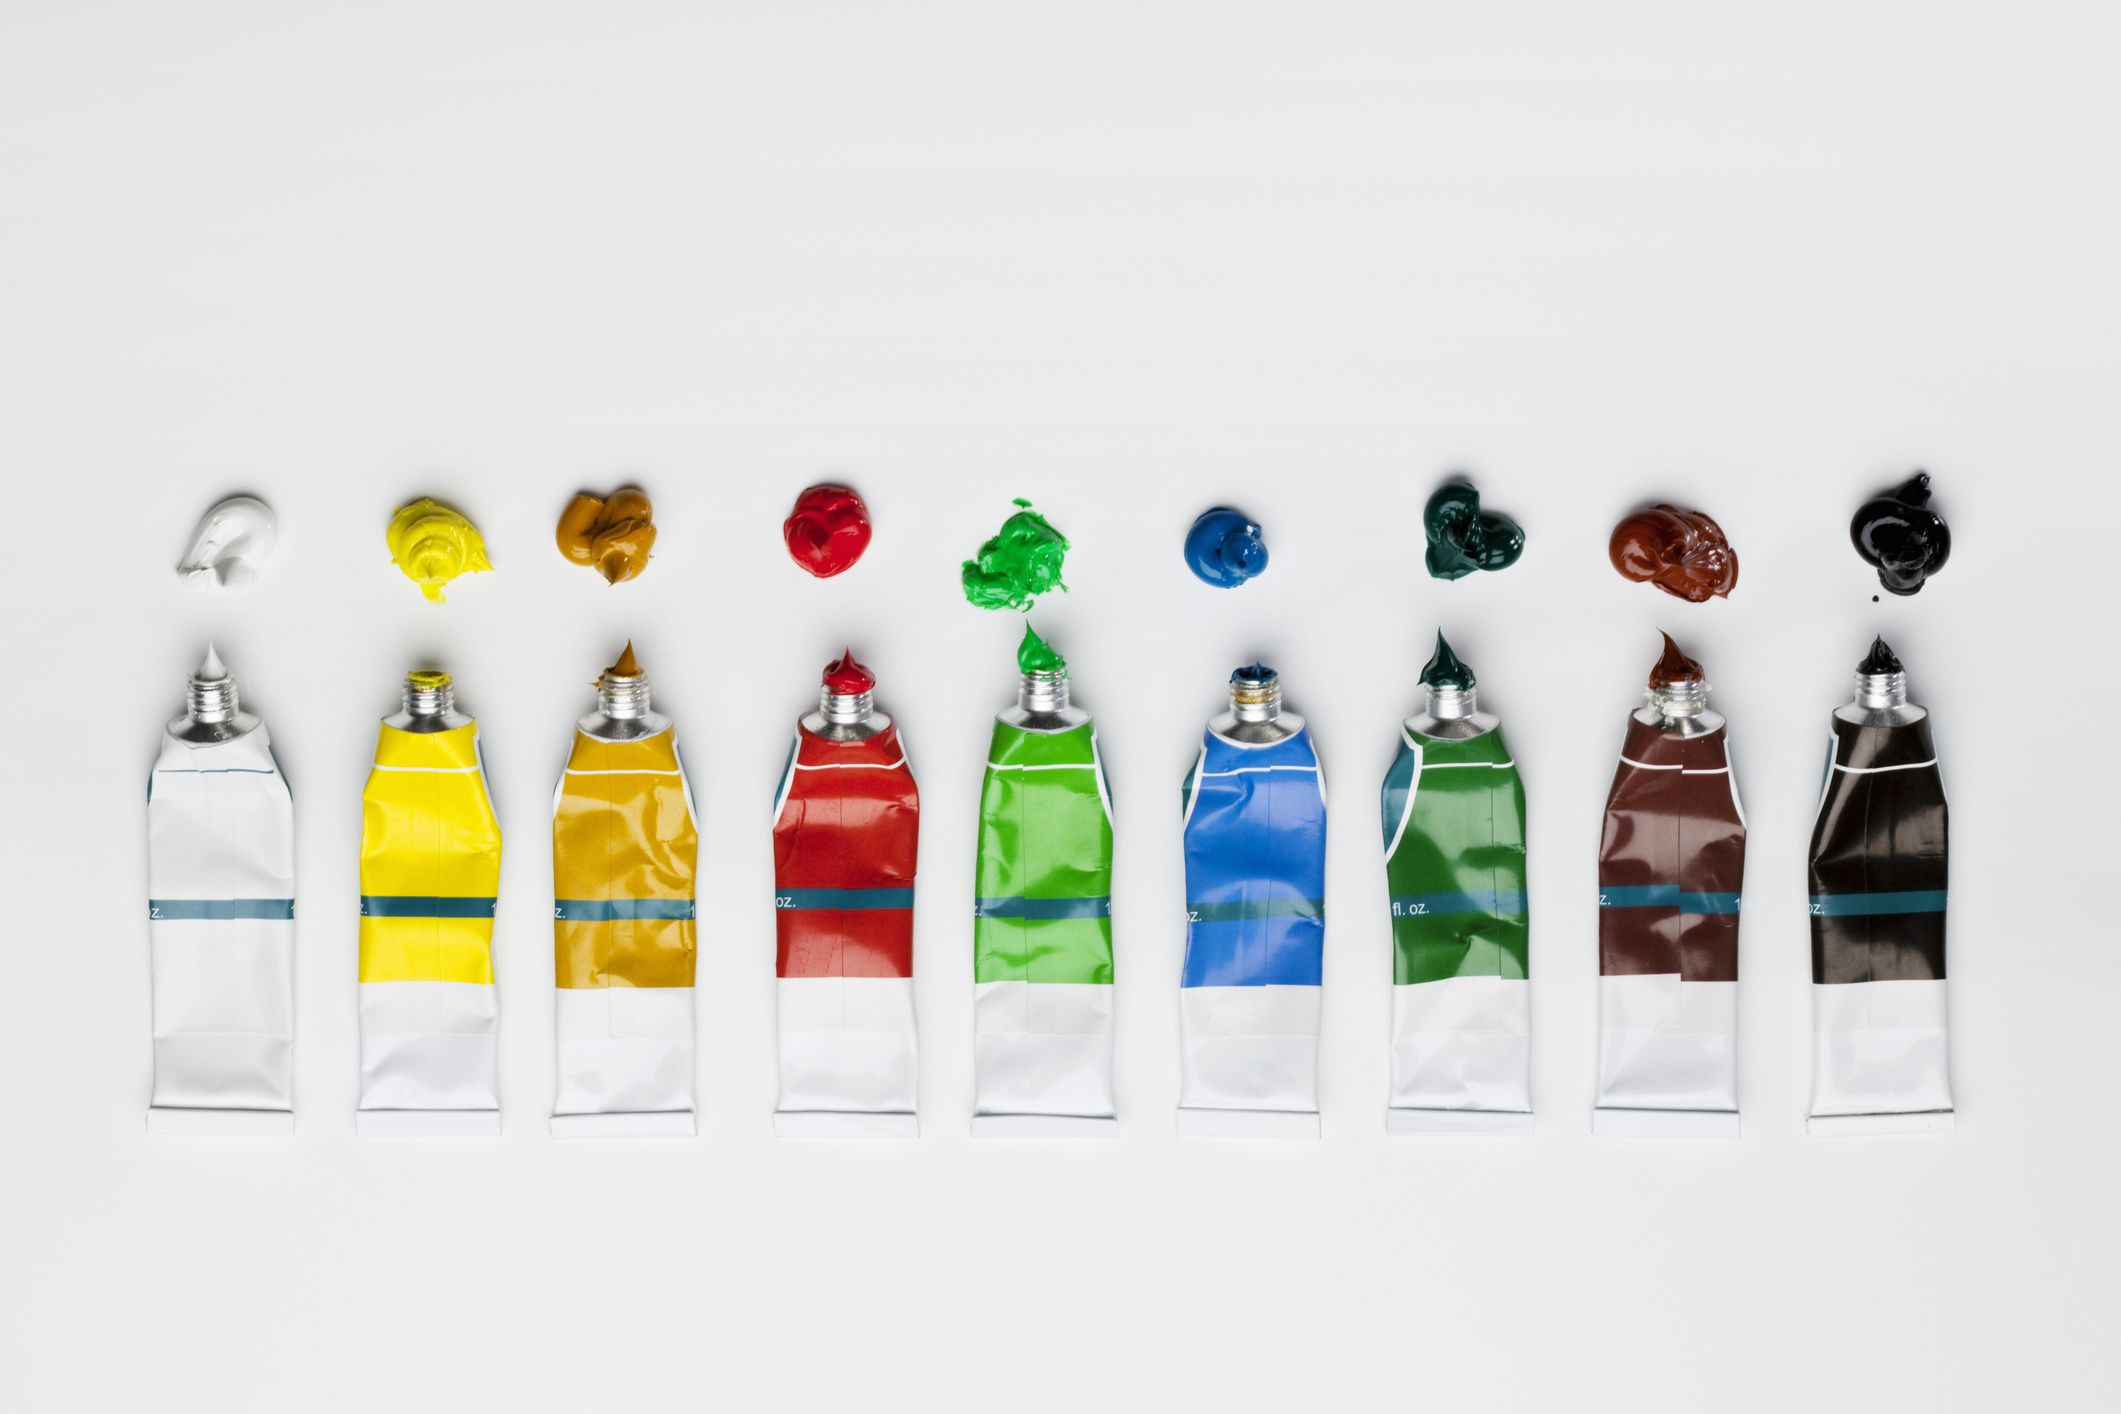 Opened tubes of paint.